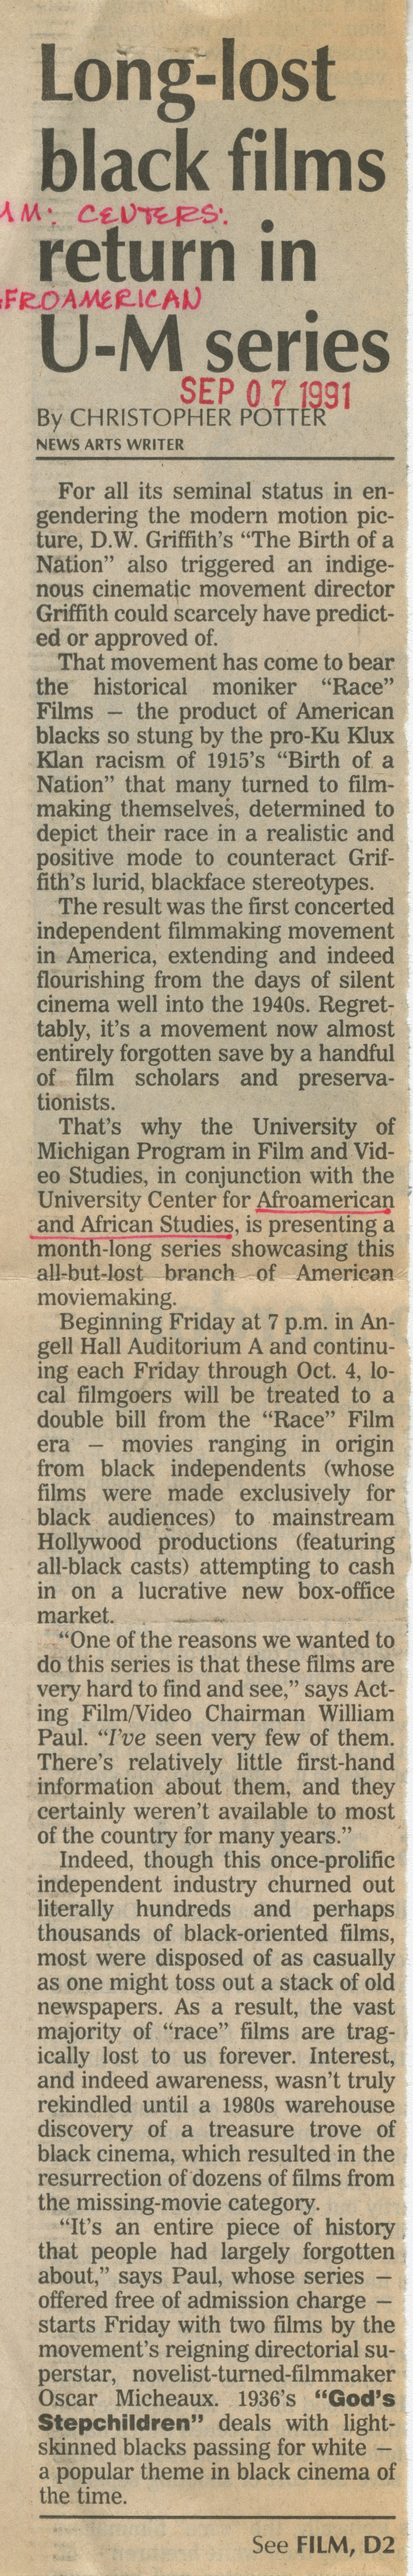 Long-lost black films return in U-M series image